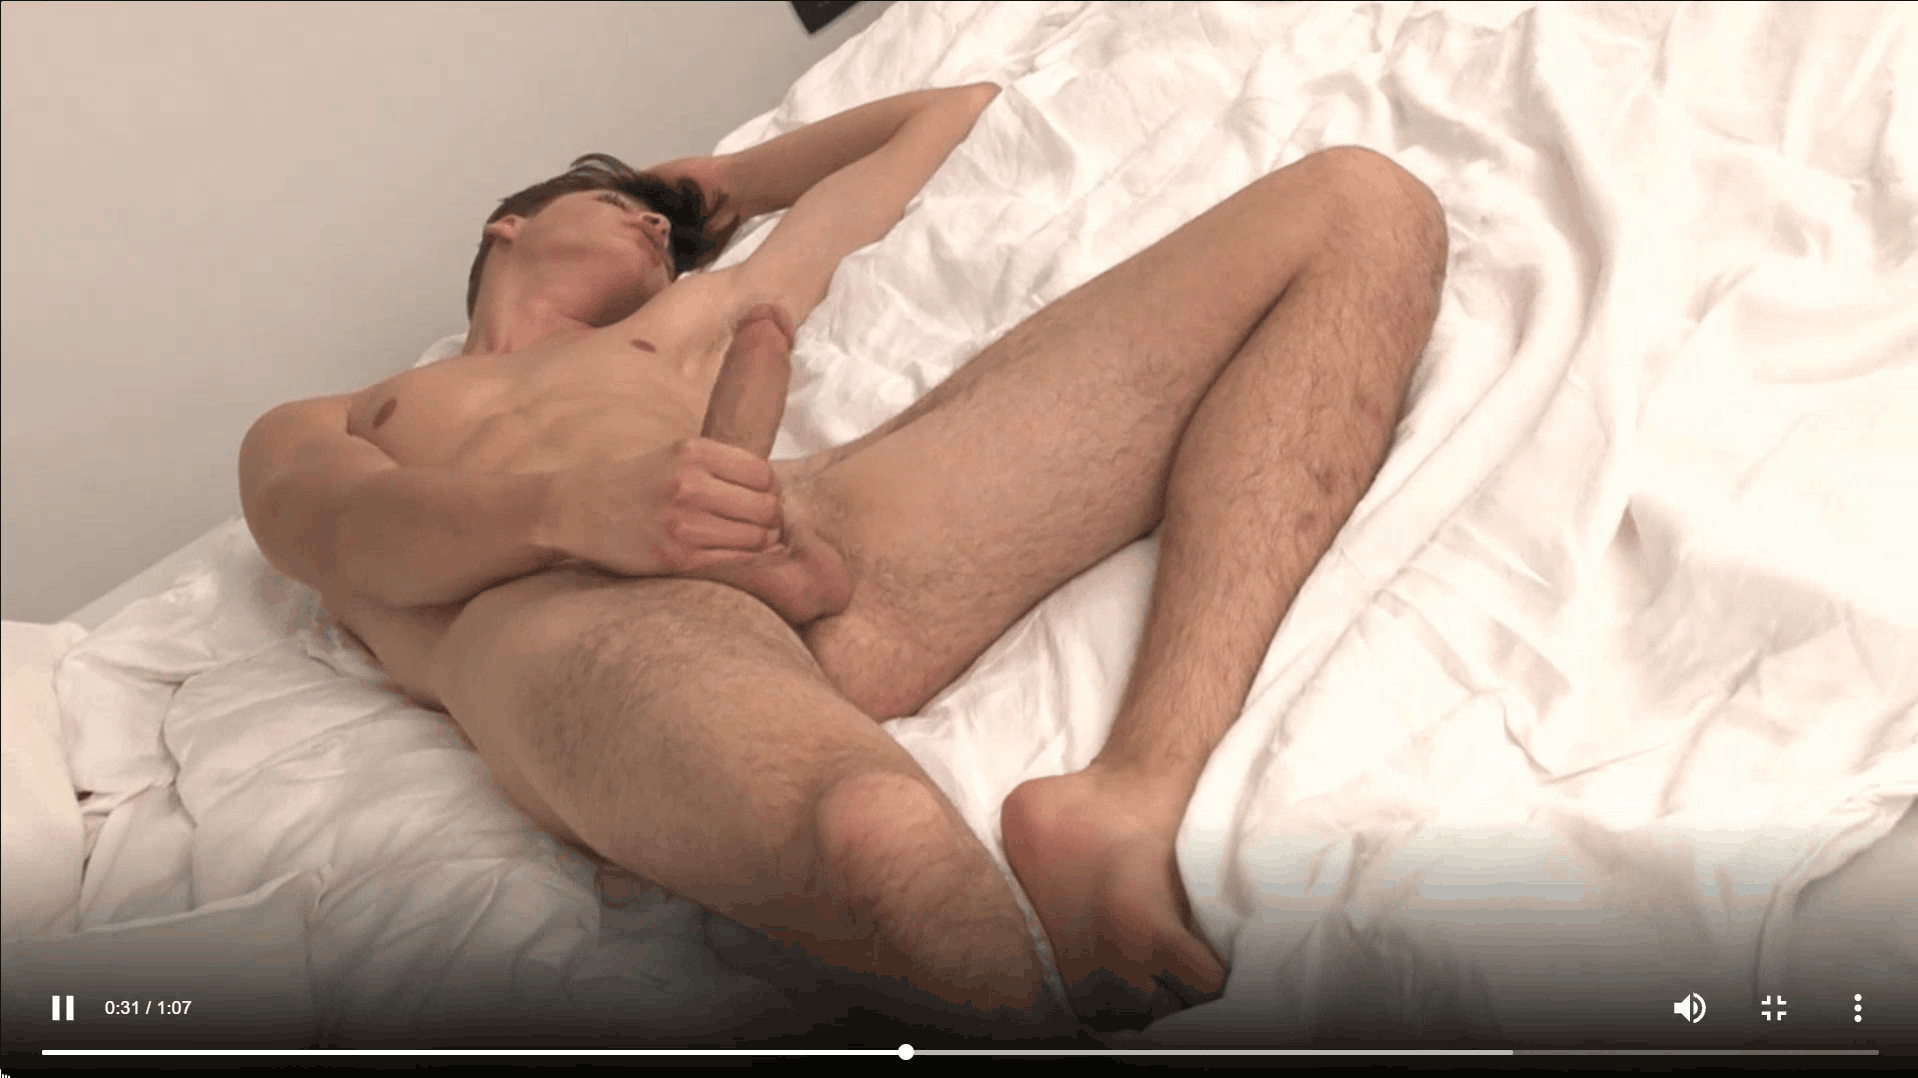 Sexy dark haired young twink Pascal Mauri steps out of the shower stroking big thick uncut dick 18 gay porn pics - Sexy dark haired young twink Pascal Mauri steps out of the shower stroking his big thick uncut dick